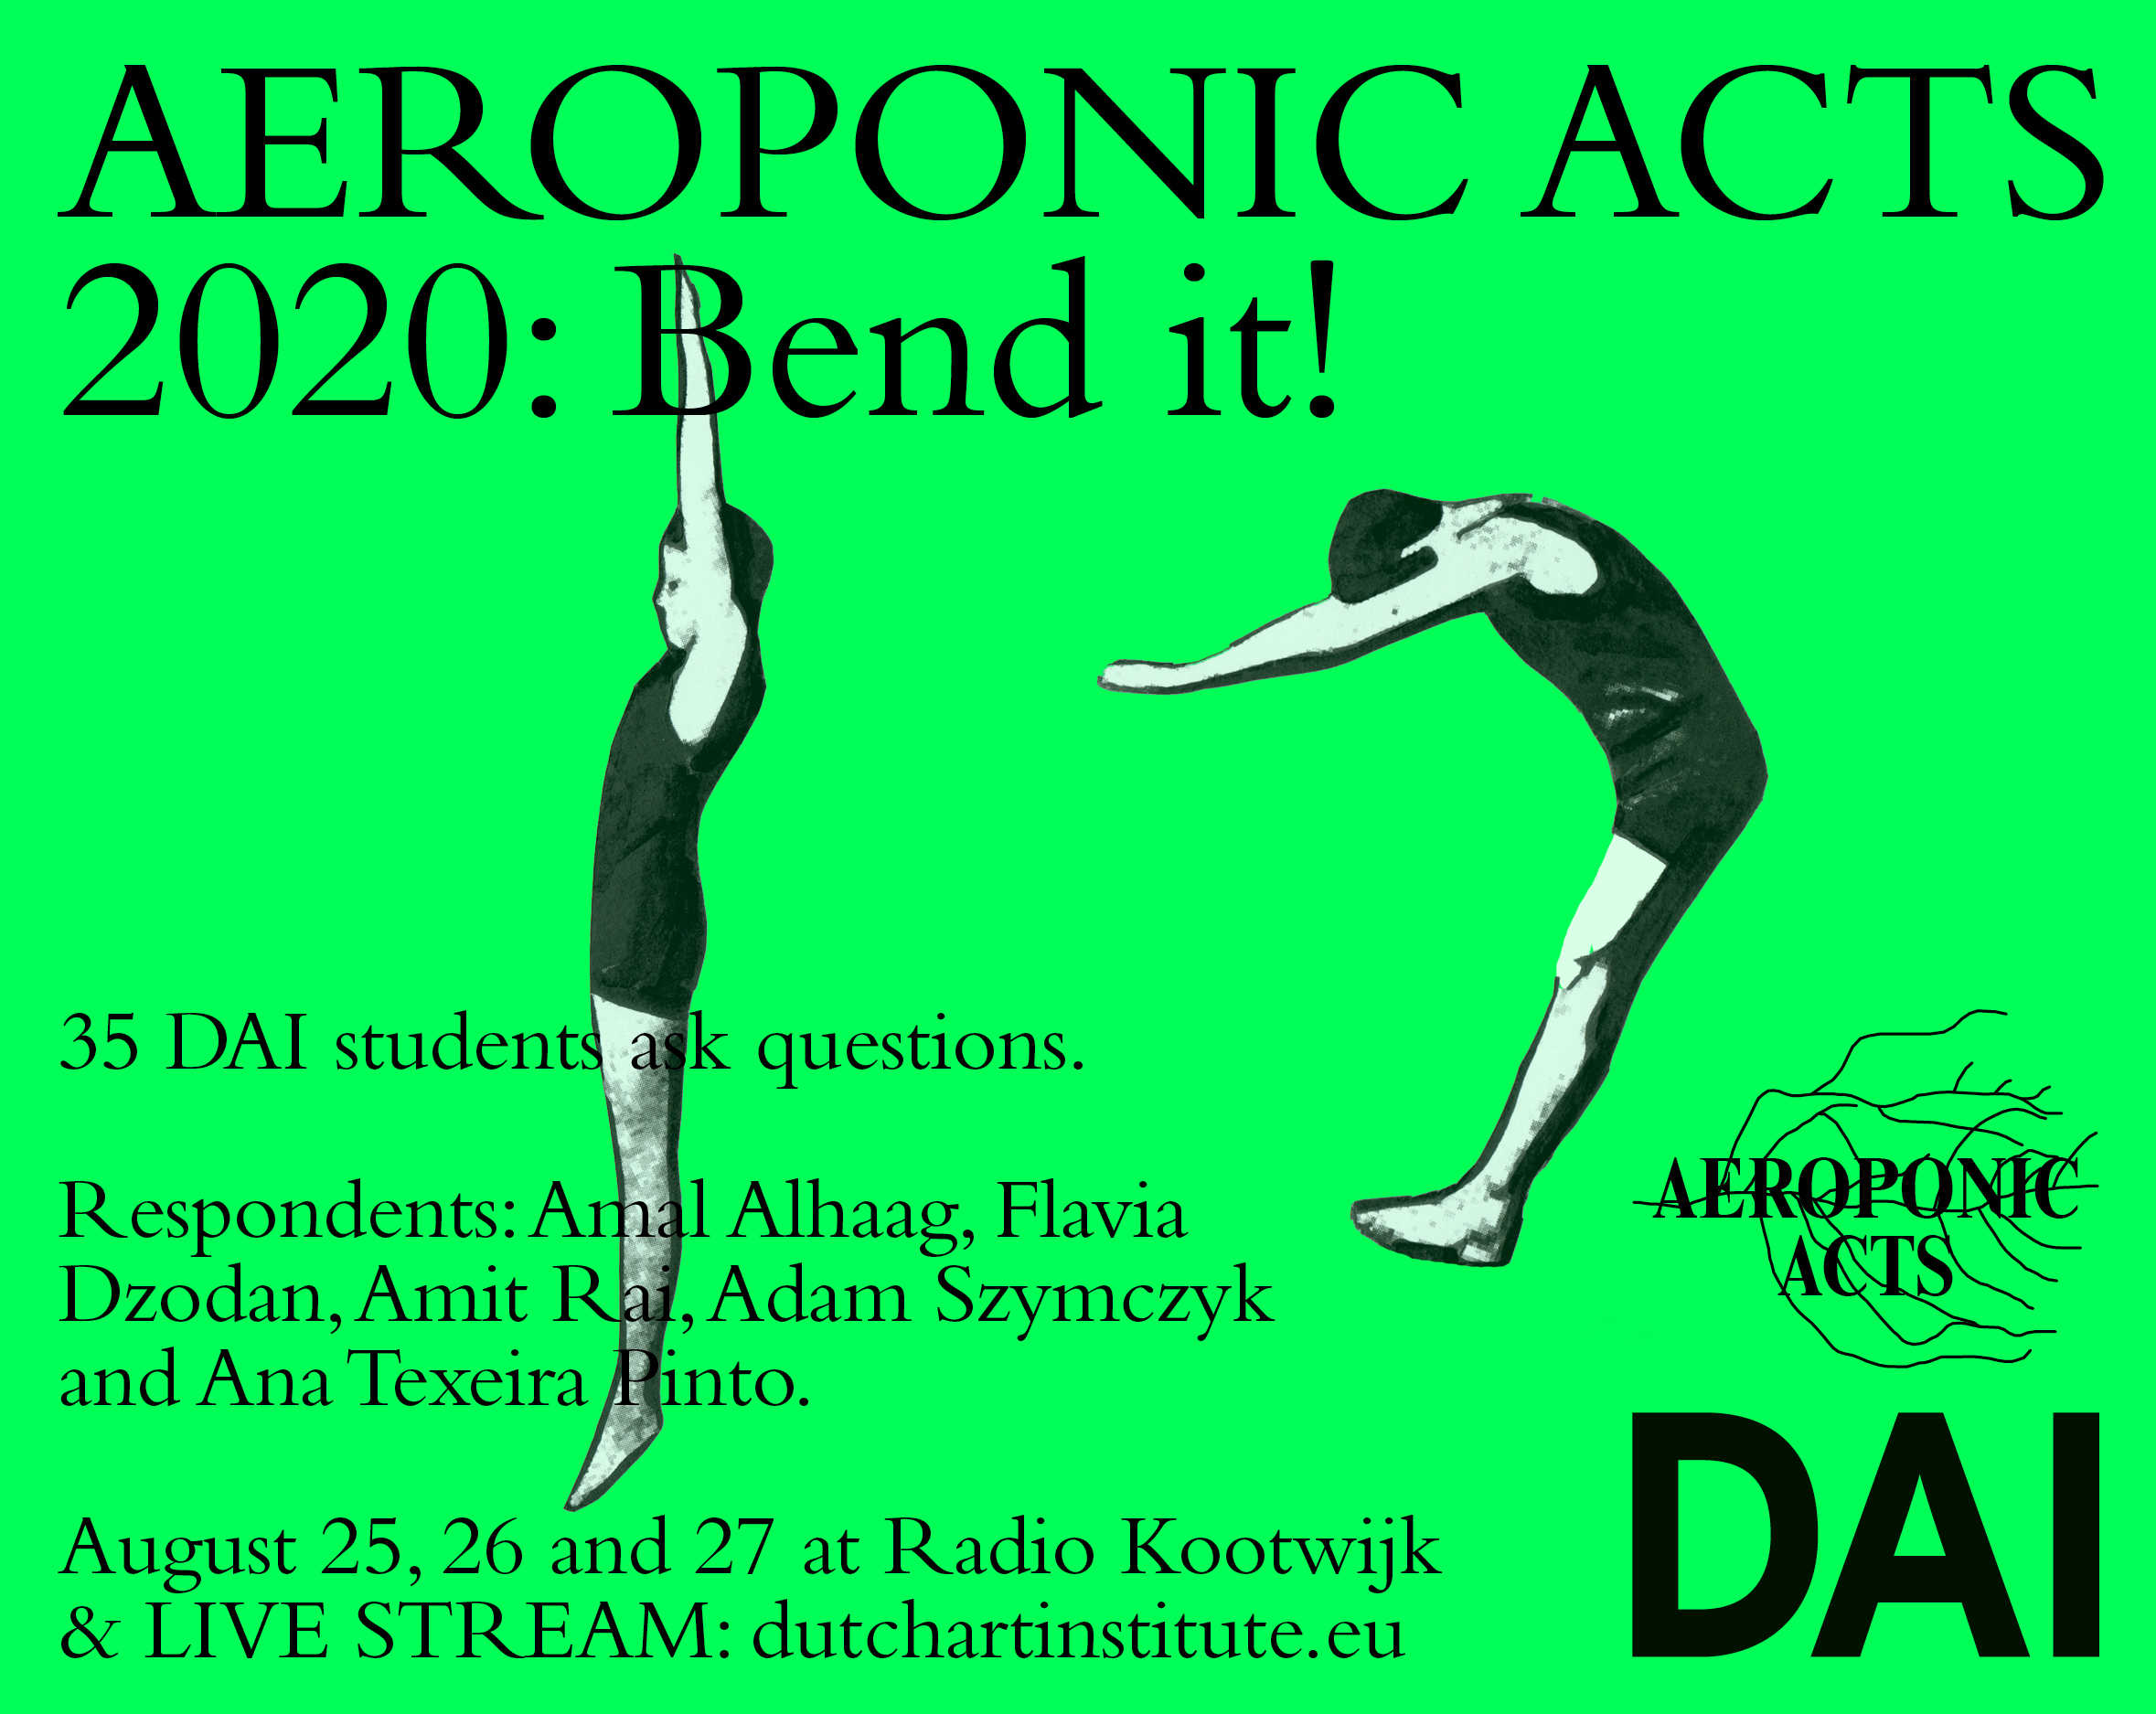 AEROPONIC ACTS 2020 Bend it!